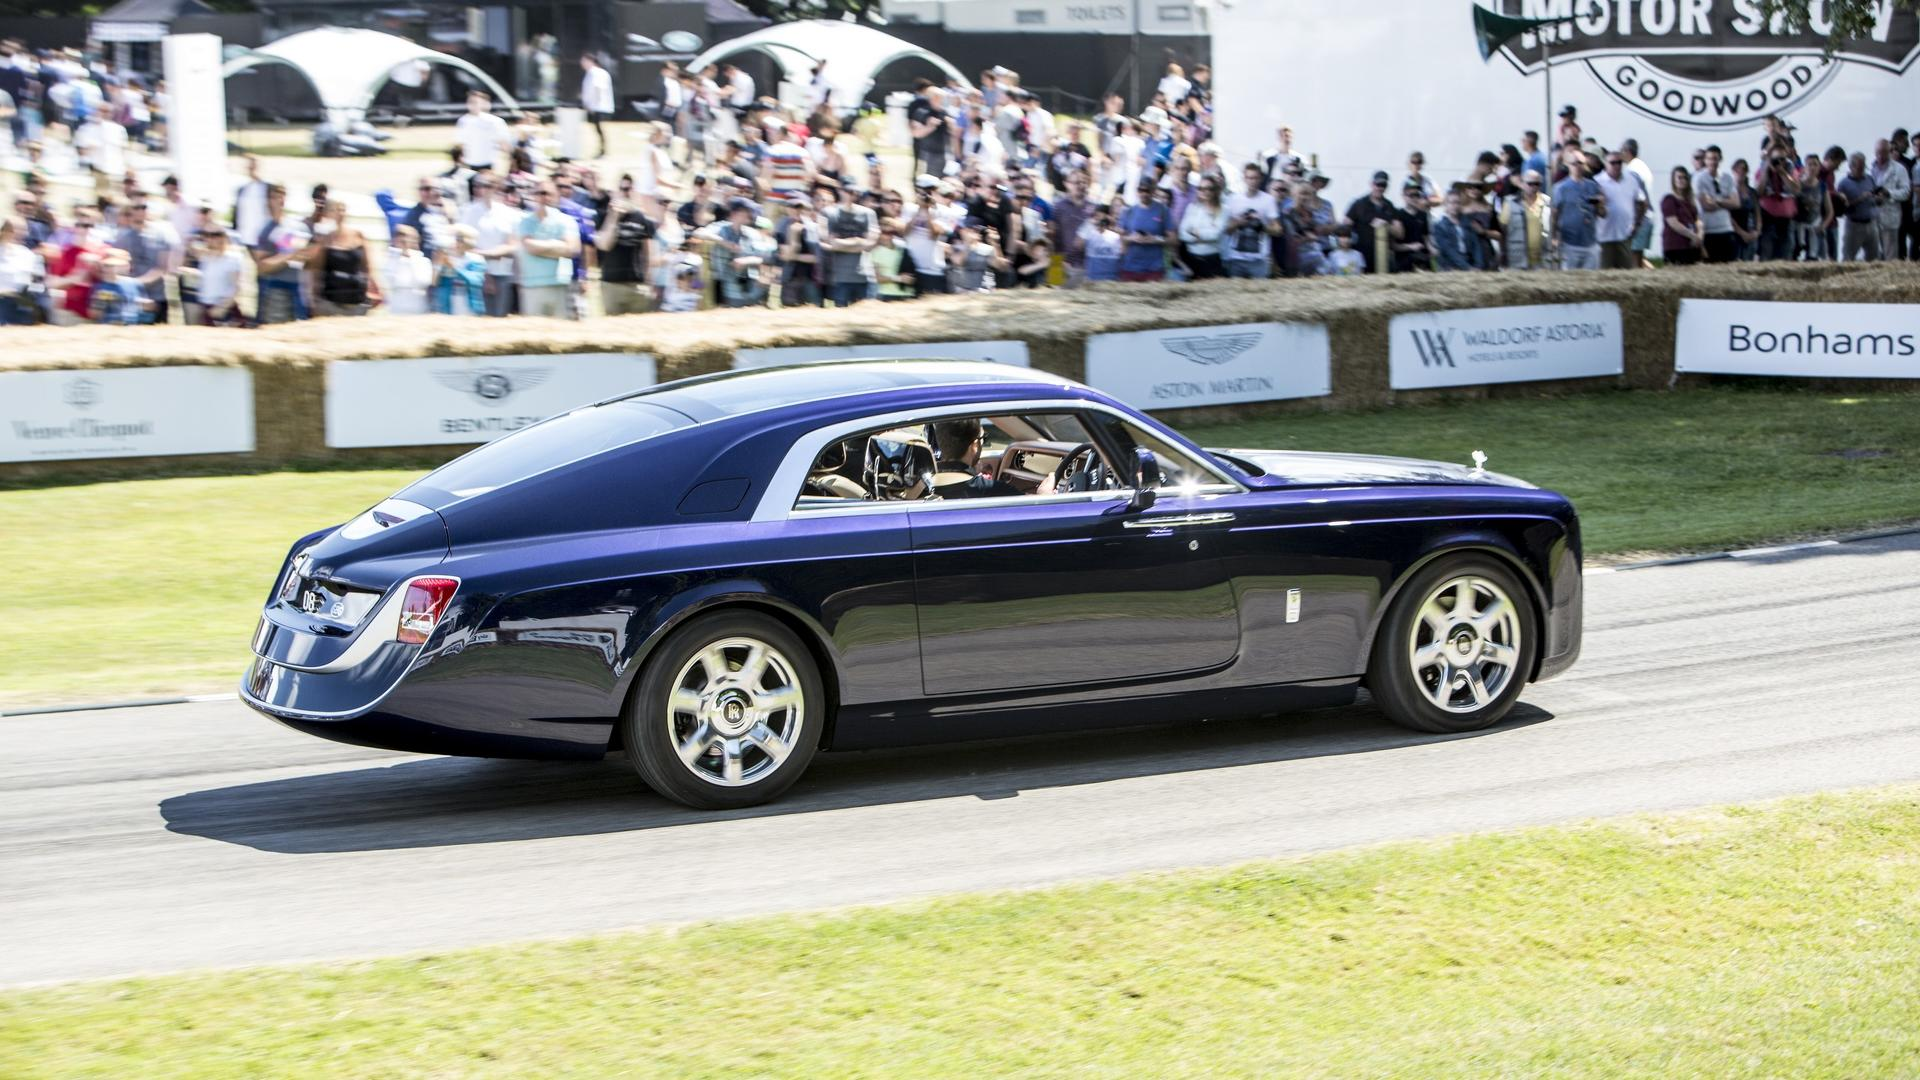 Royal Royce Car Hd Wallpaper Rolls Royce Sweptail Was In No Hurry At Goodwood Fos